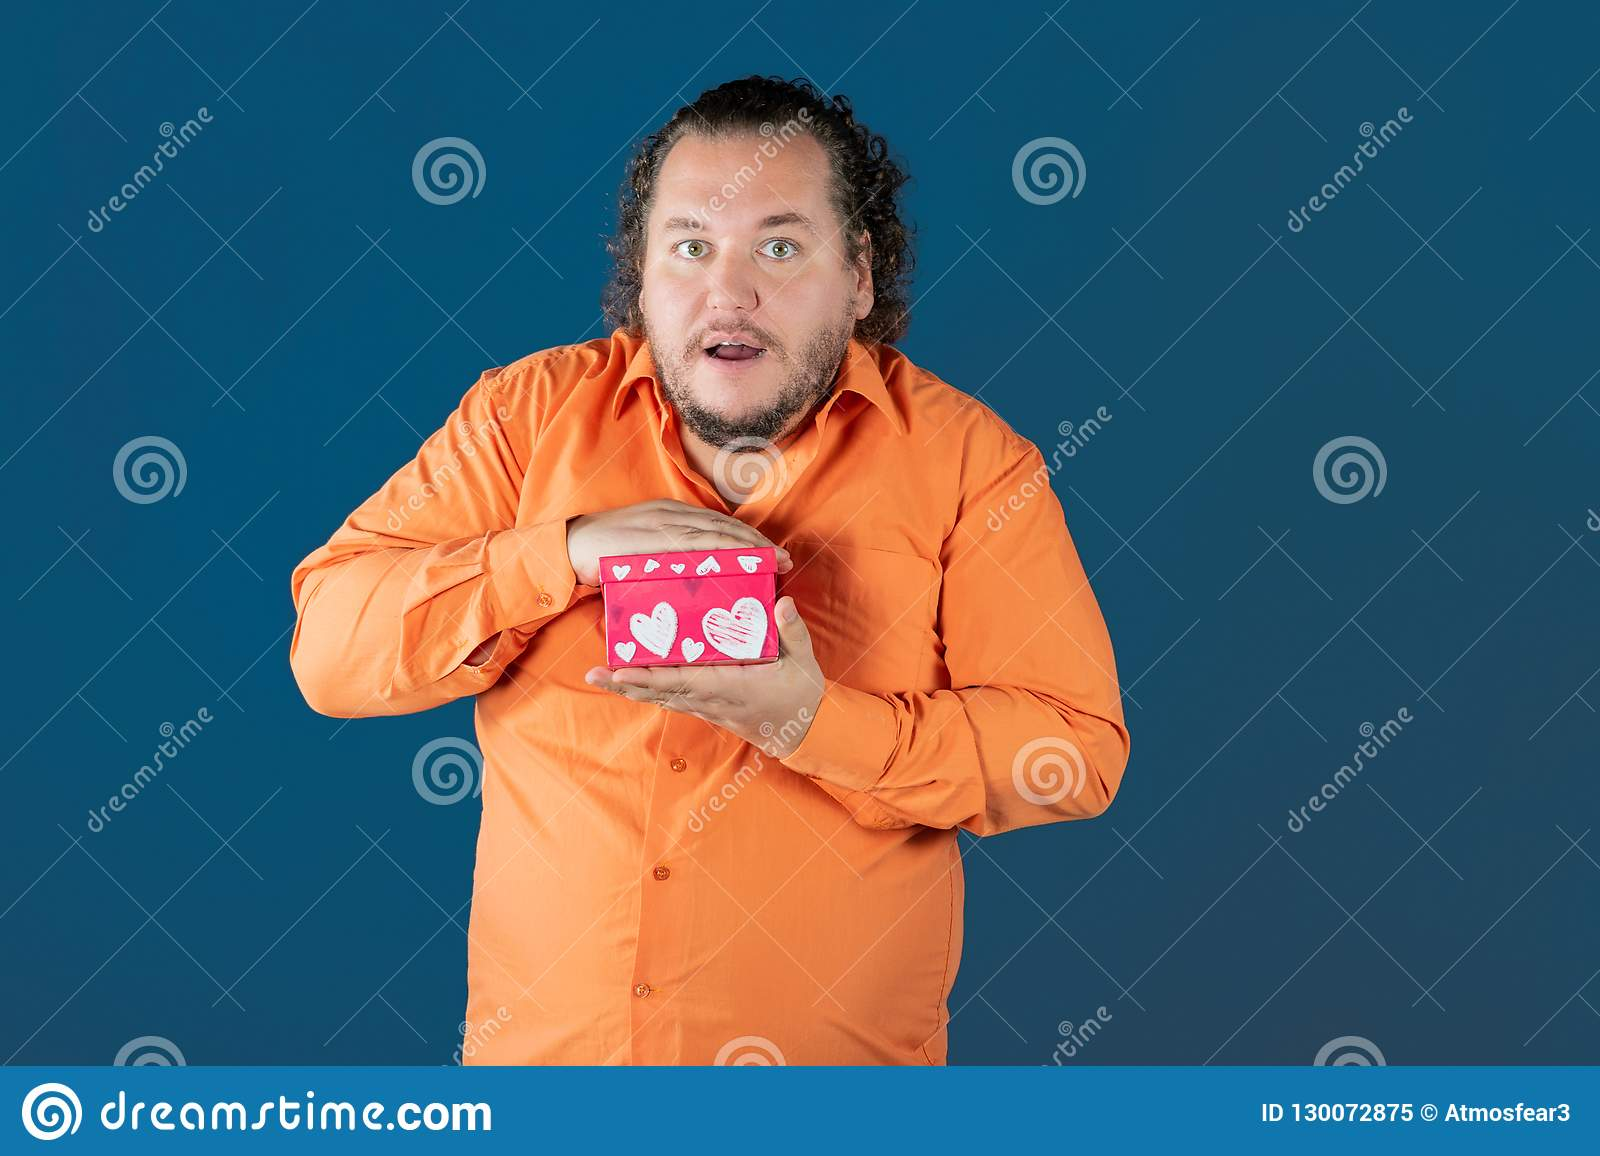 Funny fat man in orange shirt opens a box with a gift